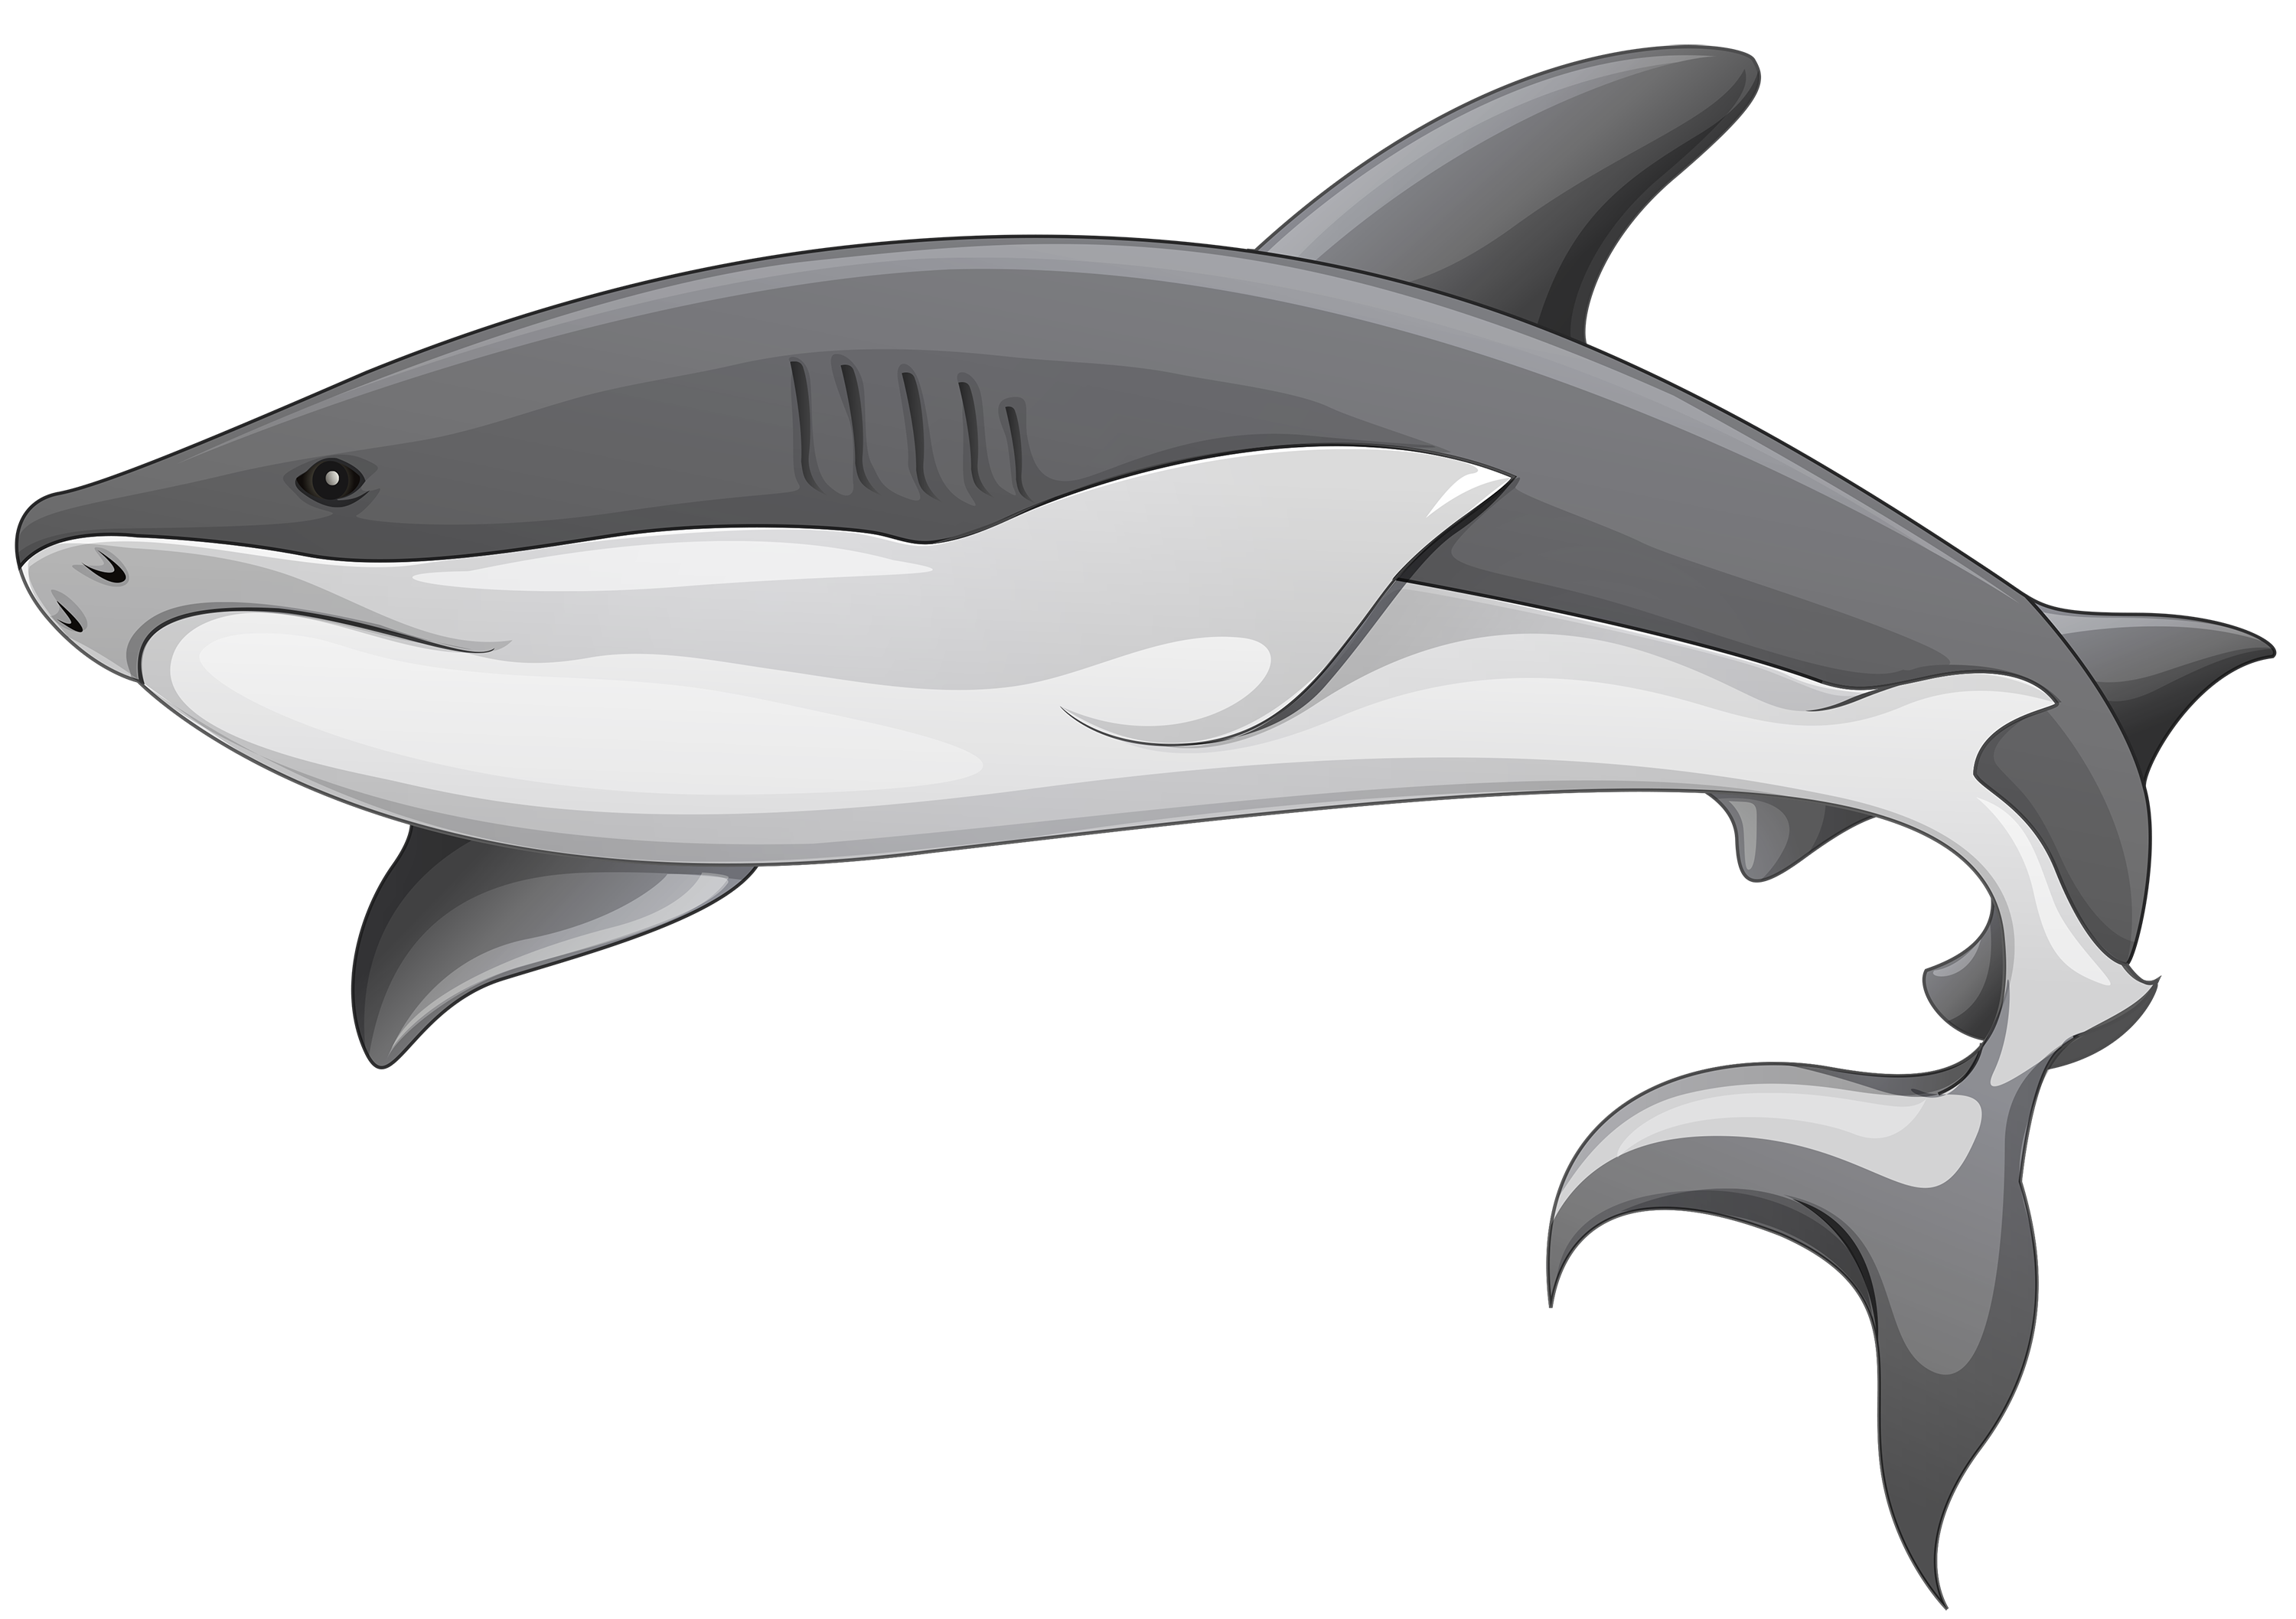 Leopard Shark clipart #2, Download drawings